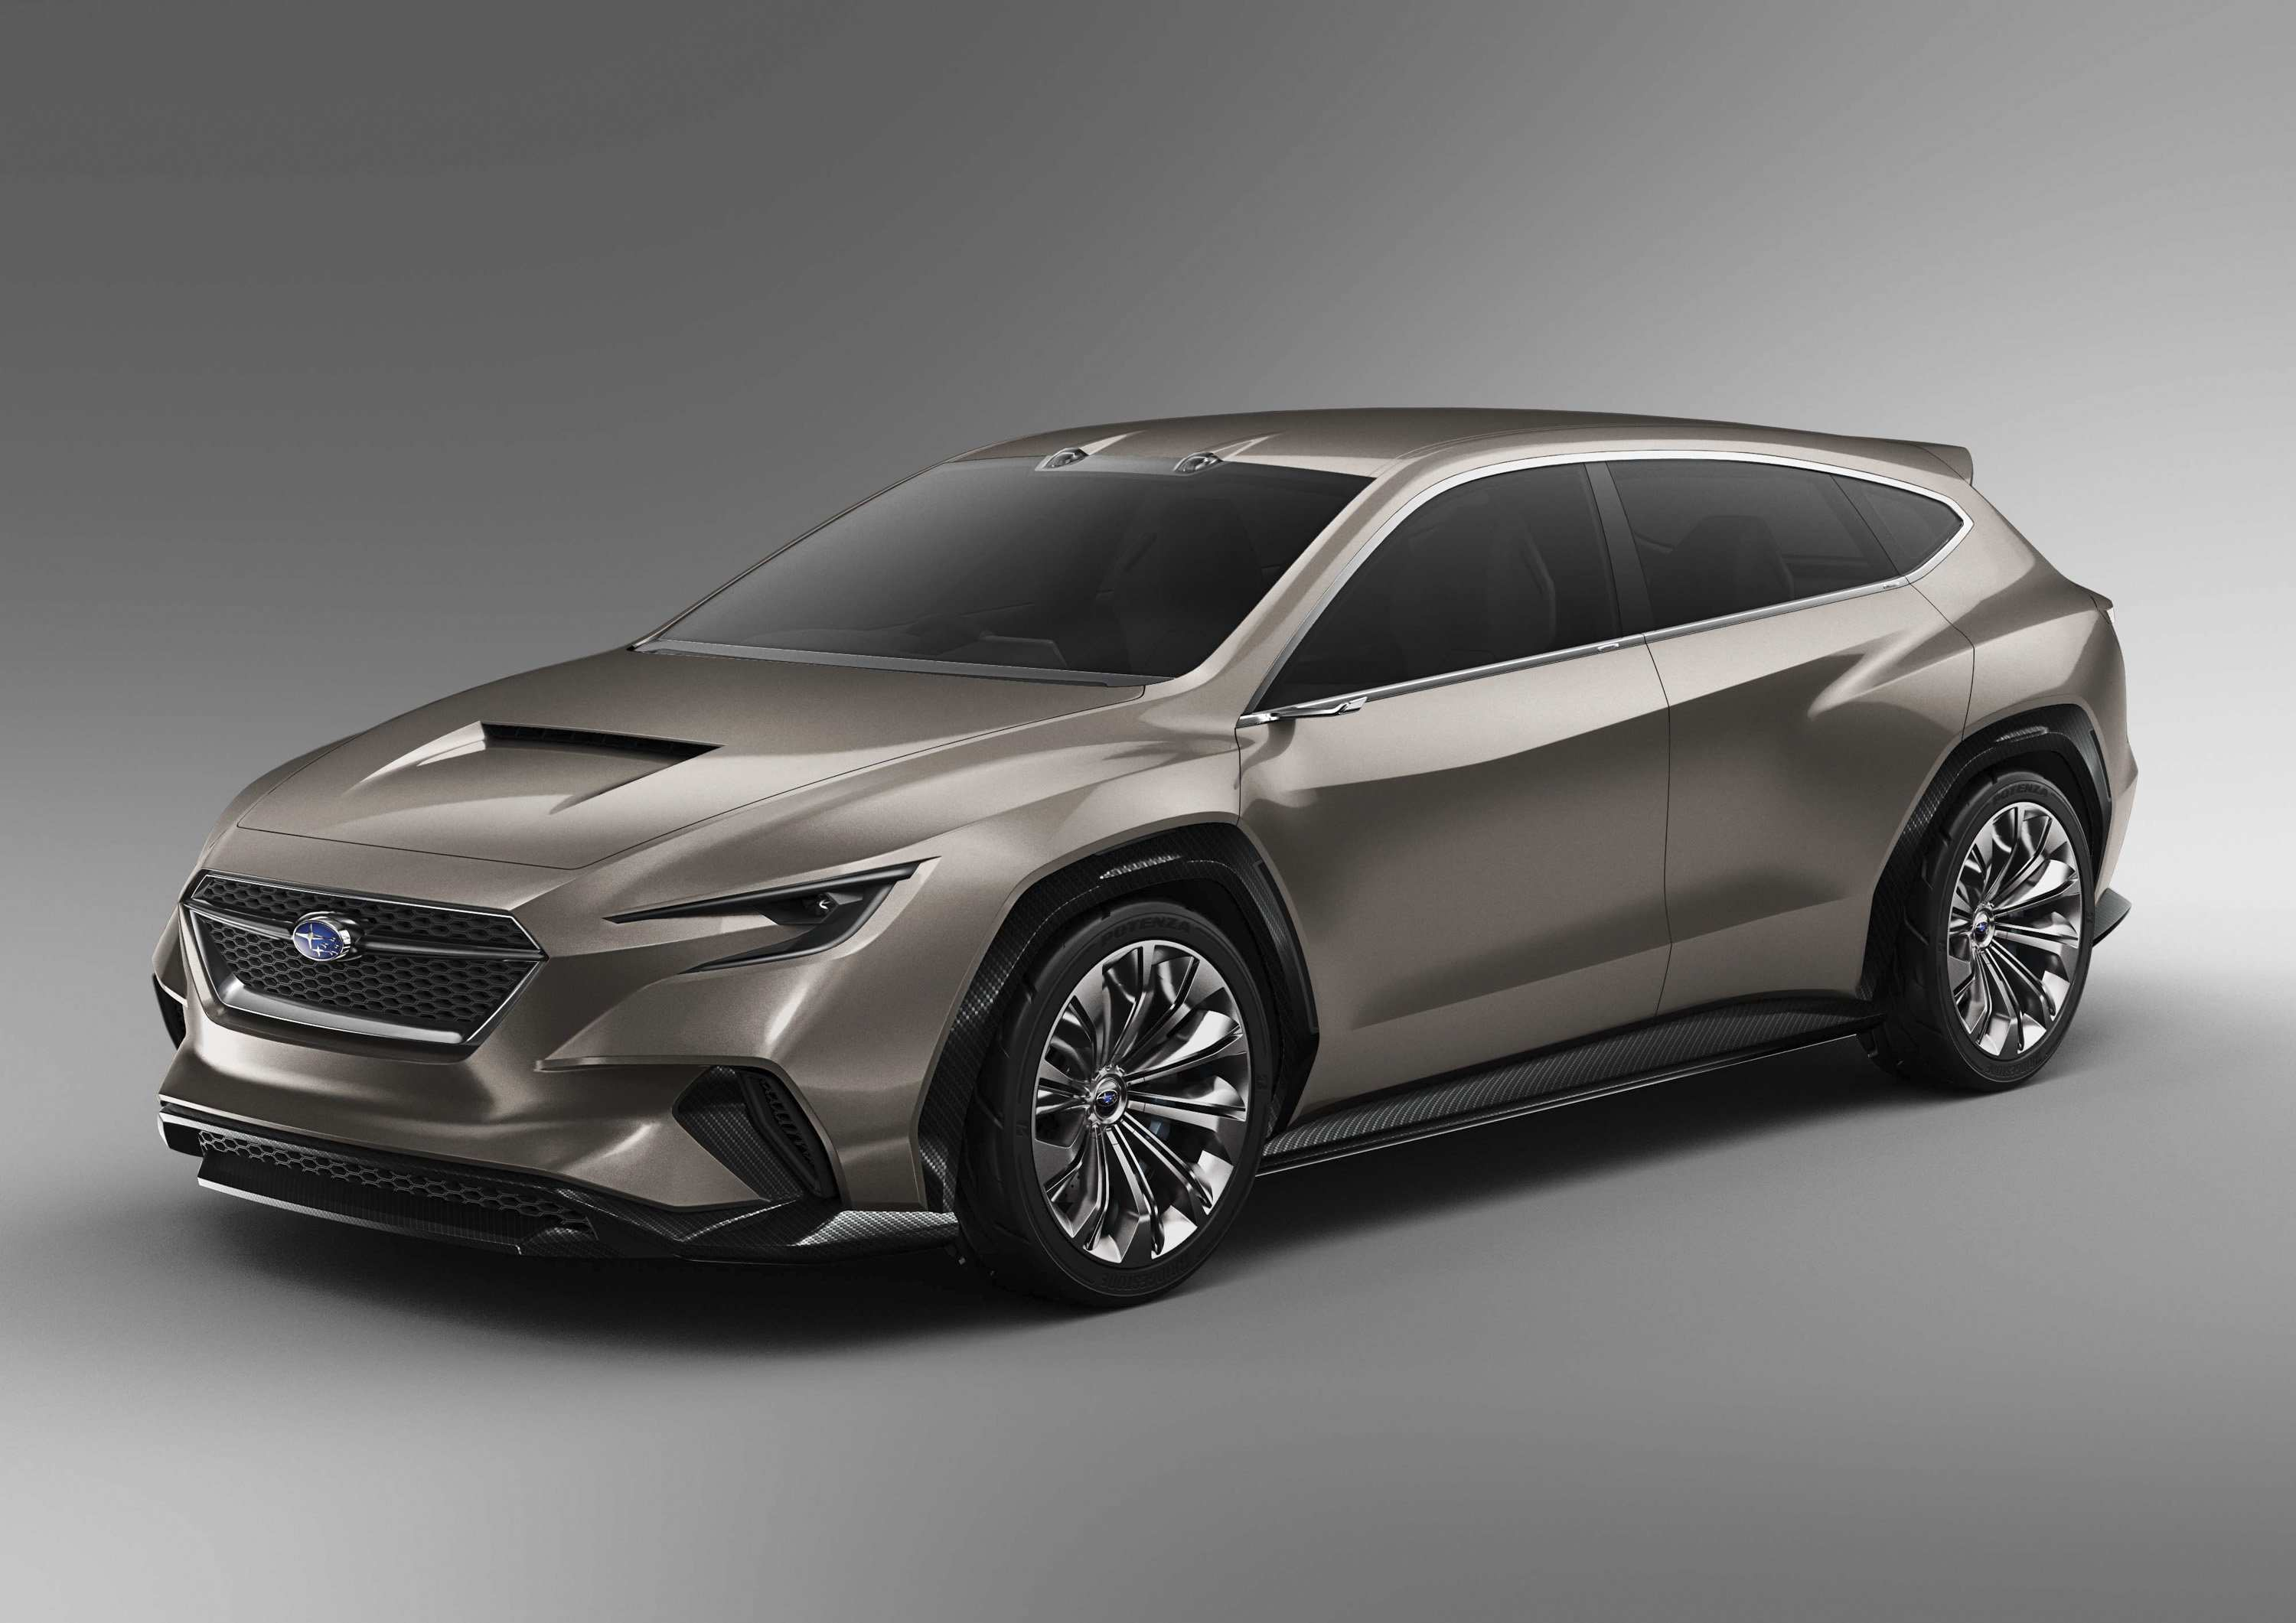 28 New 2020 Subaru Outback Concept Performance And New Engine